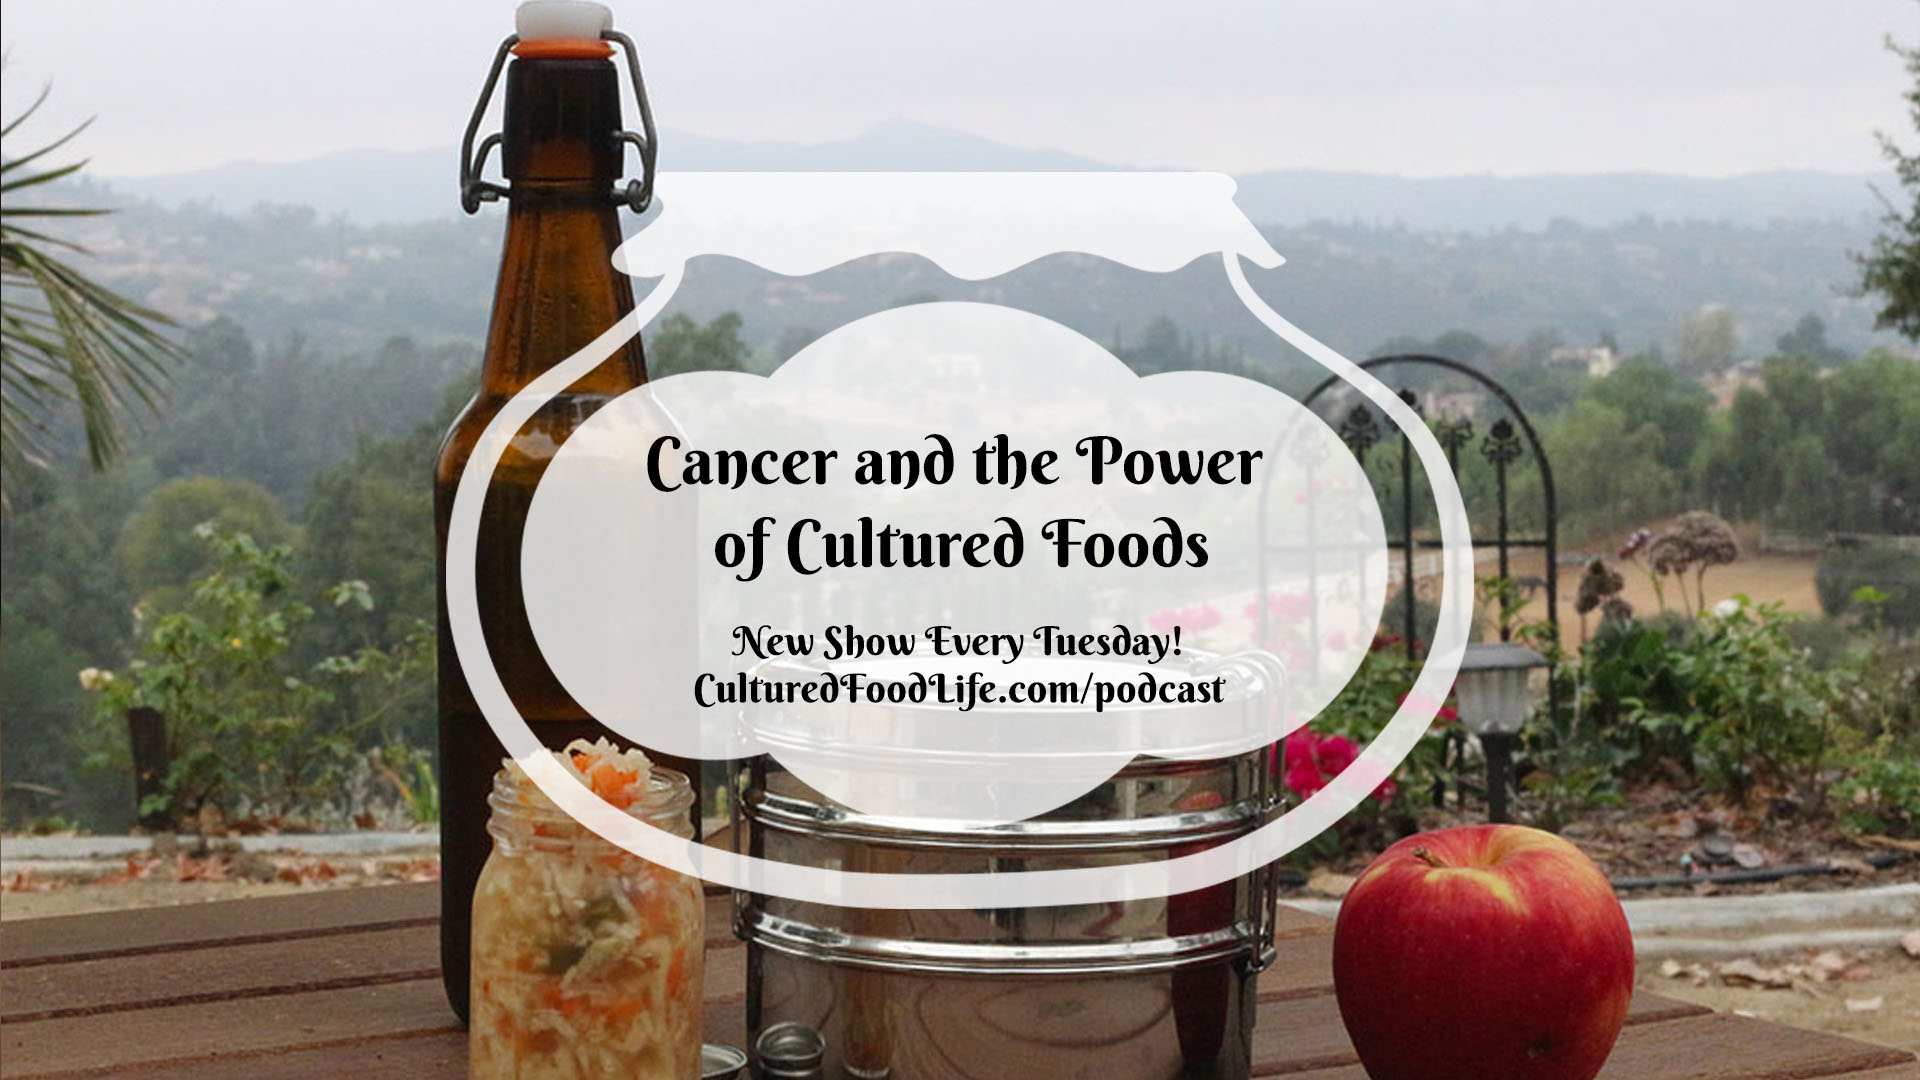 Cancer and the Power of Cultured Foods full